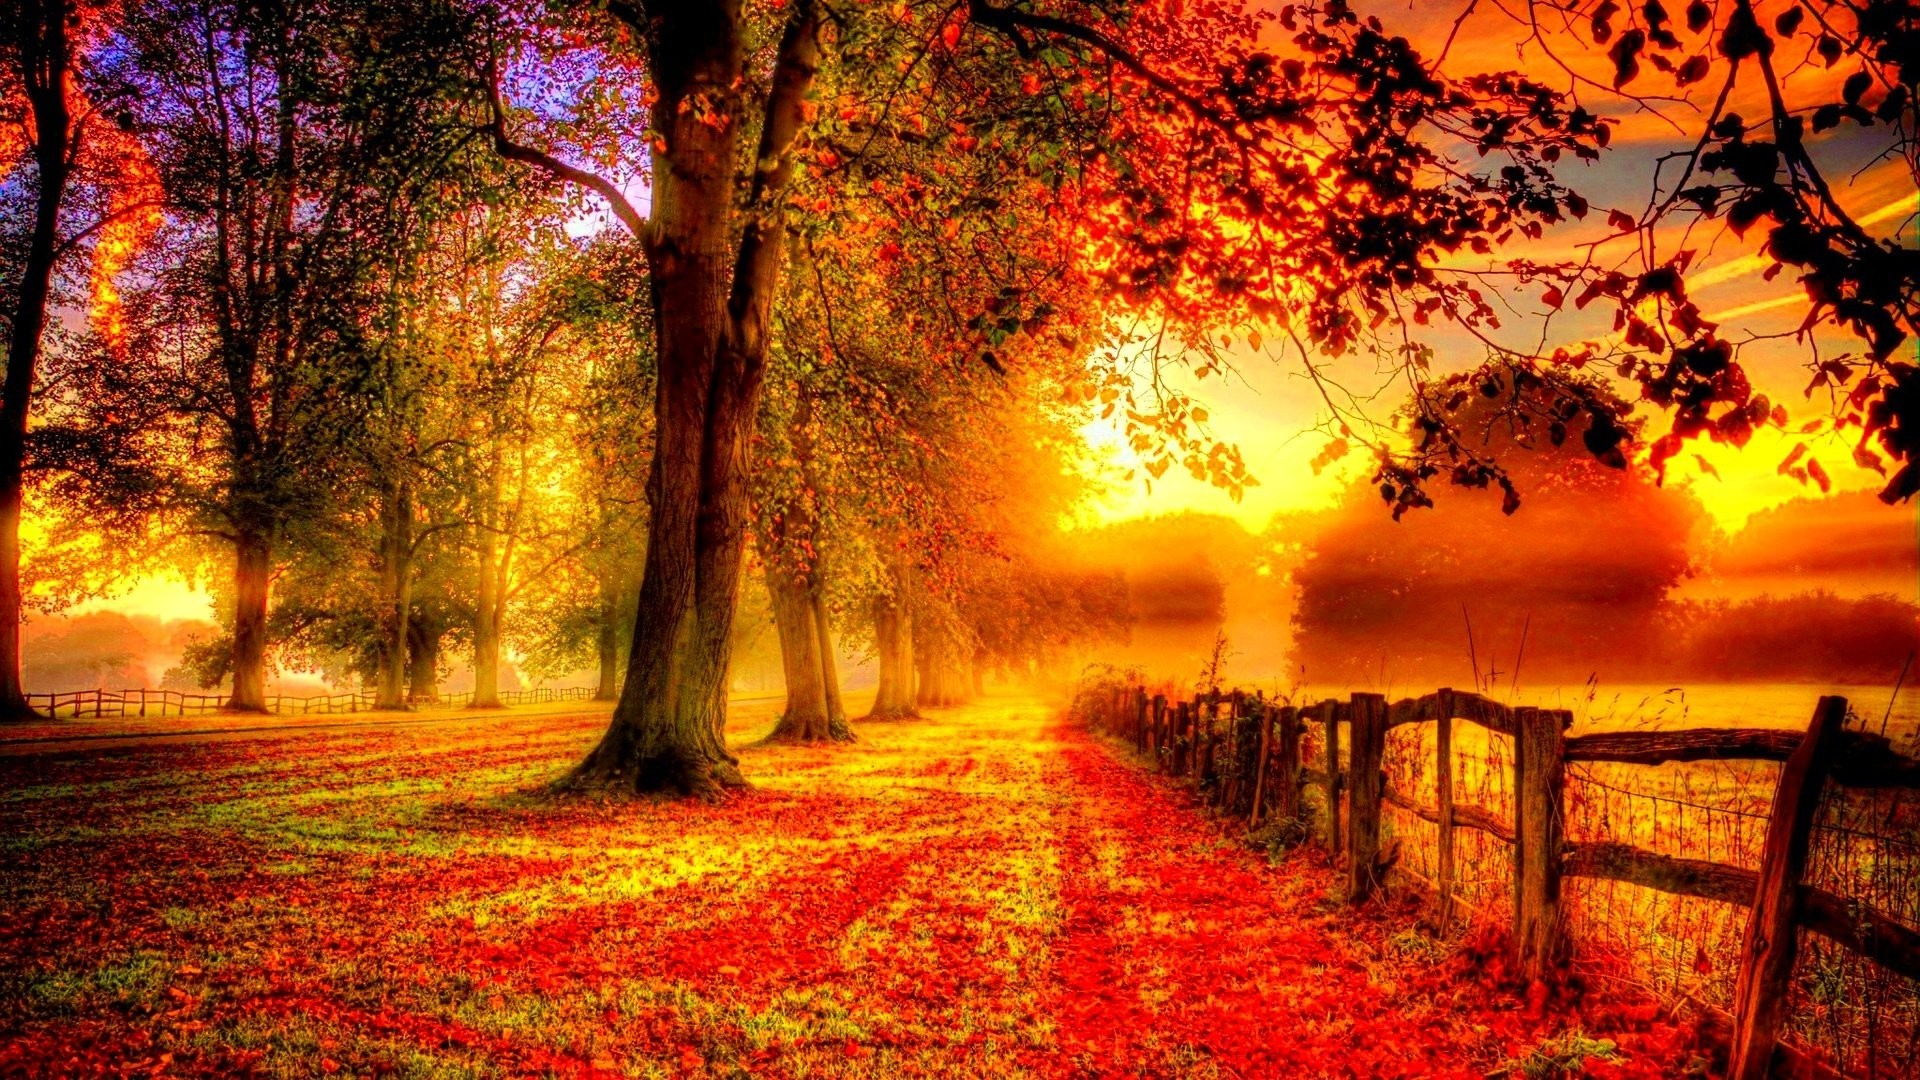 Forest Color Fall Season Autumn Landscape Tree Nature Hd Wallpapers For Iphone  6 – 1920×1080